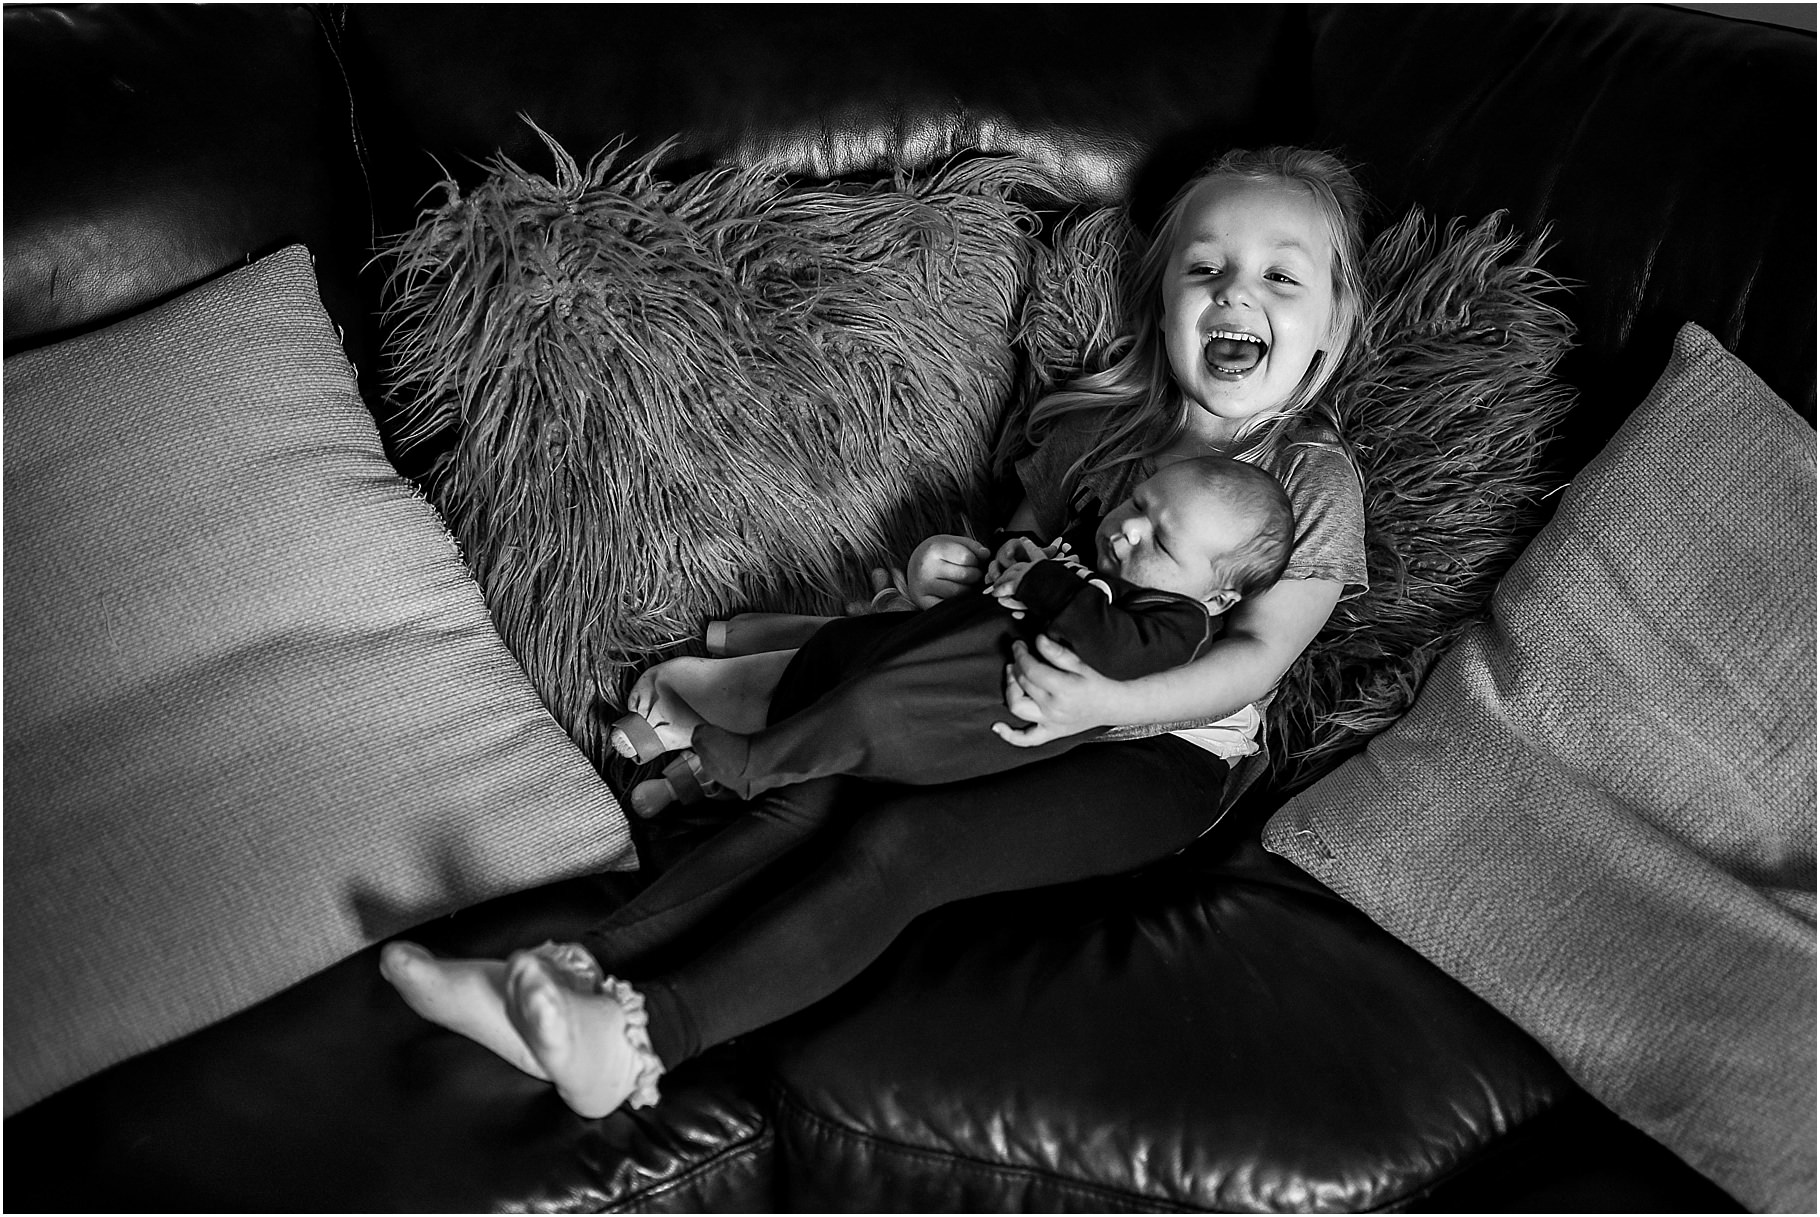 lancashire-family-portraits-documentary-newborn-22.jpg